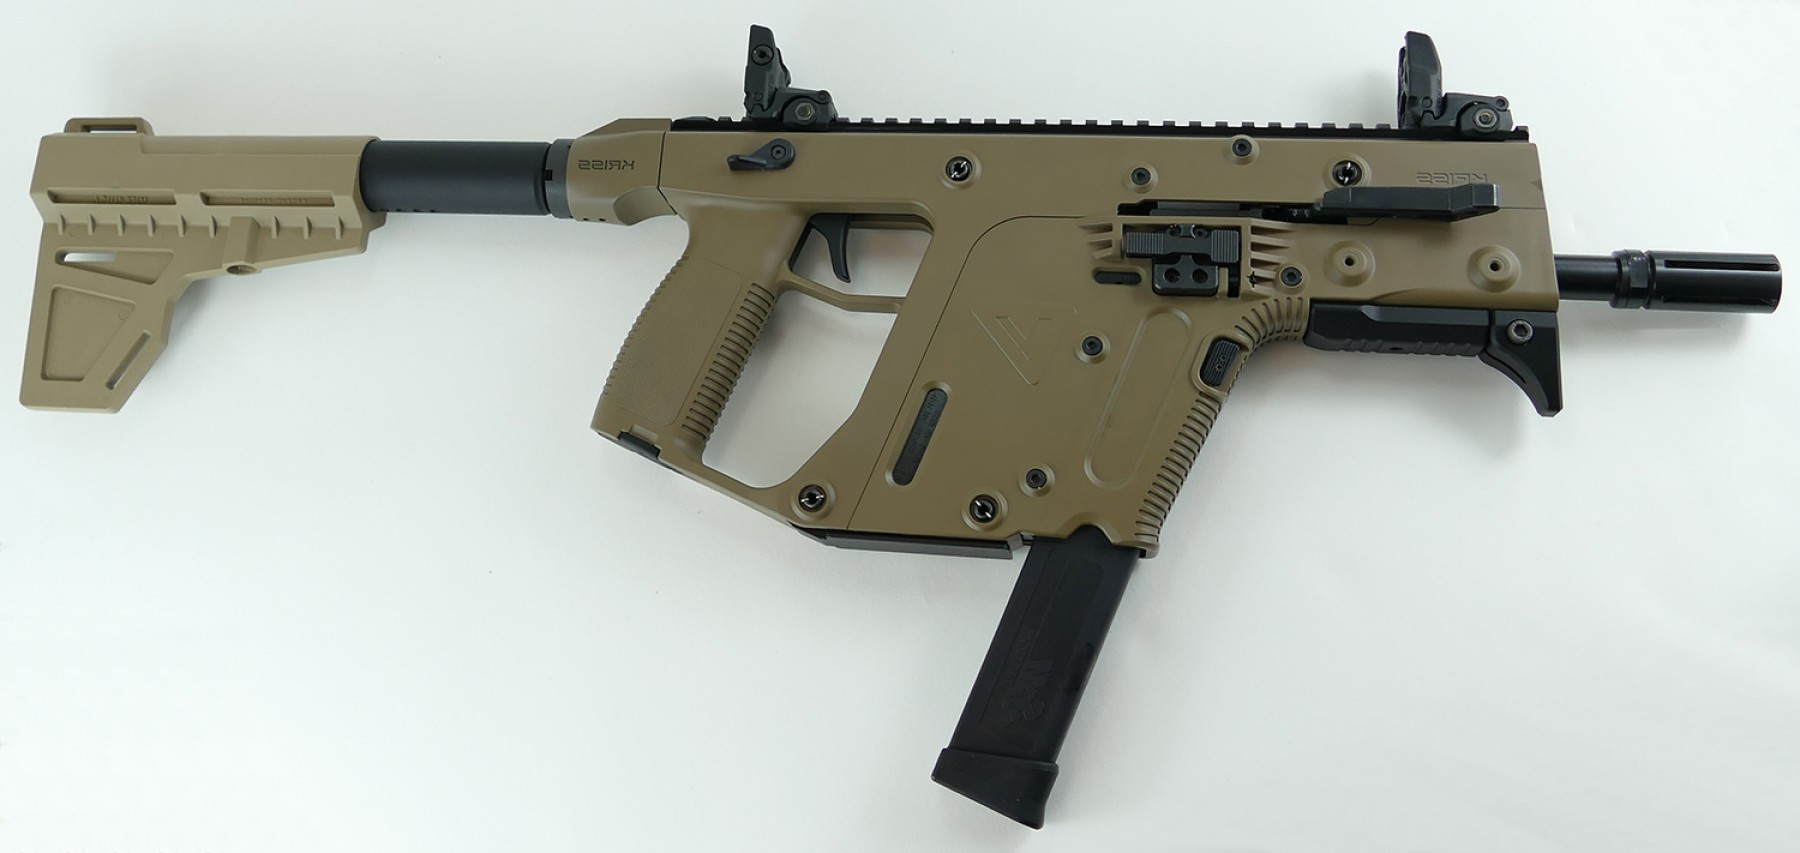 Kriss Vector Handgun: Kriss Vector Gen Ii Acp Pistol Fde With Shockwave Like New Used